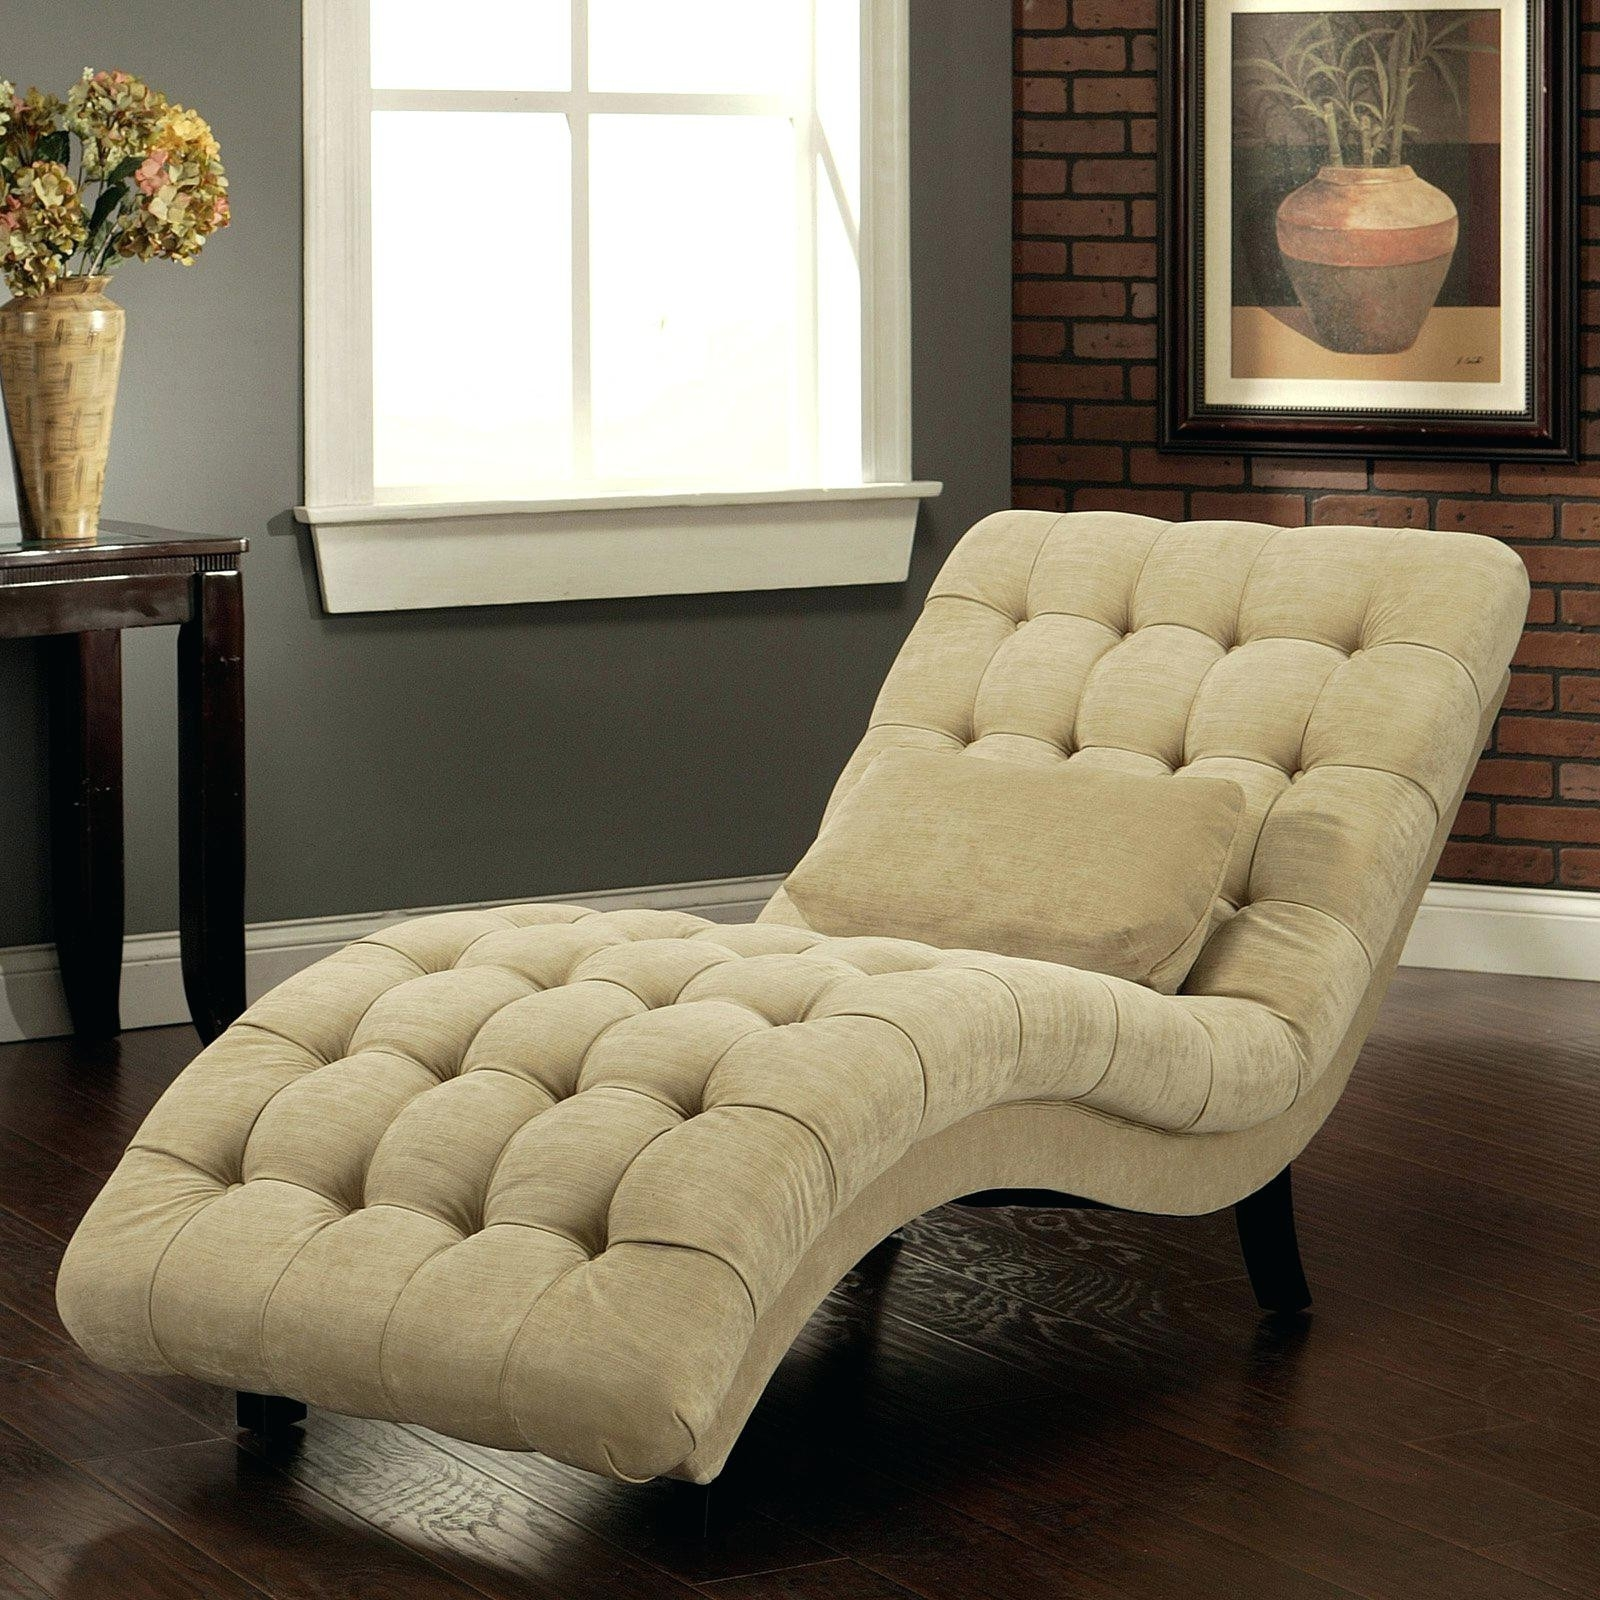 Awesome Microfiber Chaise Lounge Chair – Home With Regard To Favorite Microfiber Chaise Lounge Chairs (View 8 of 15)